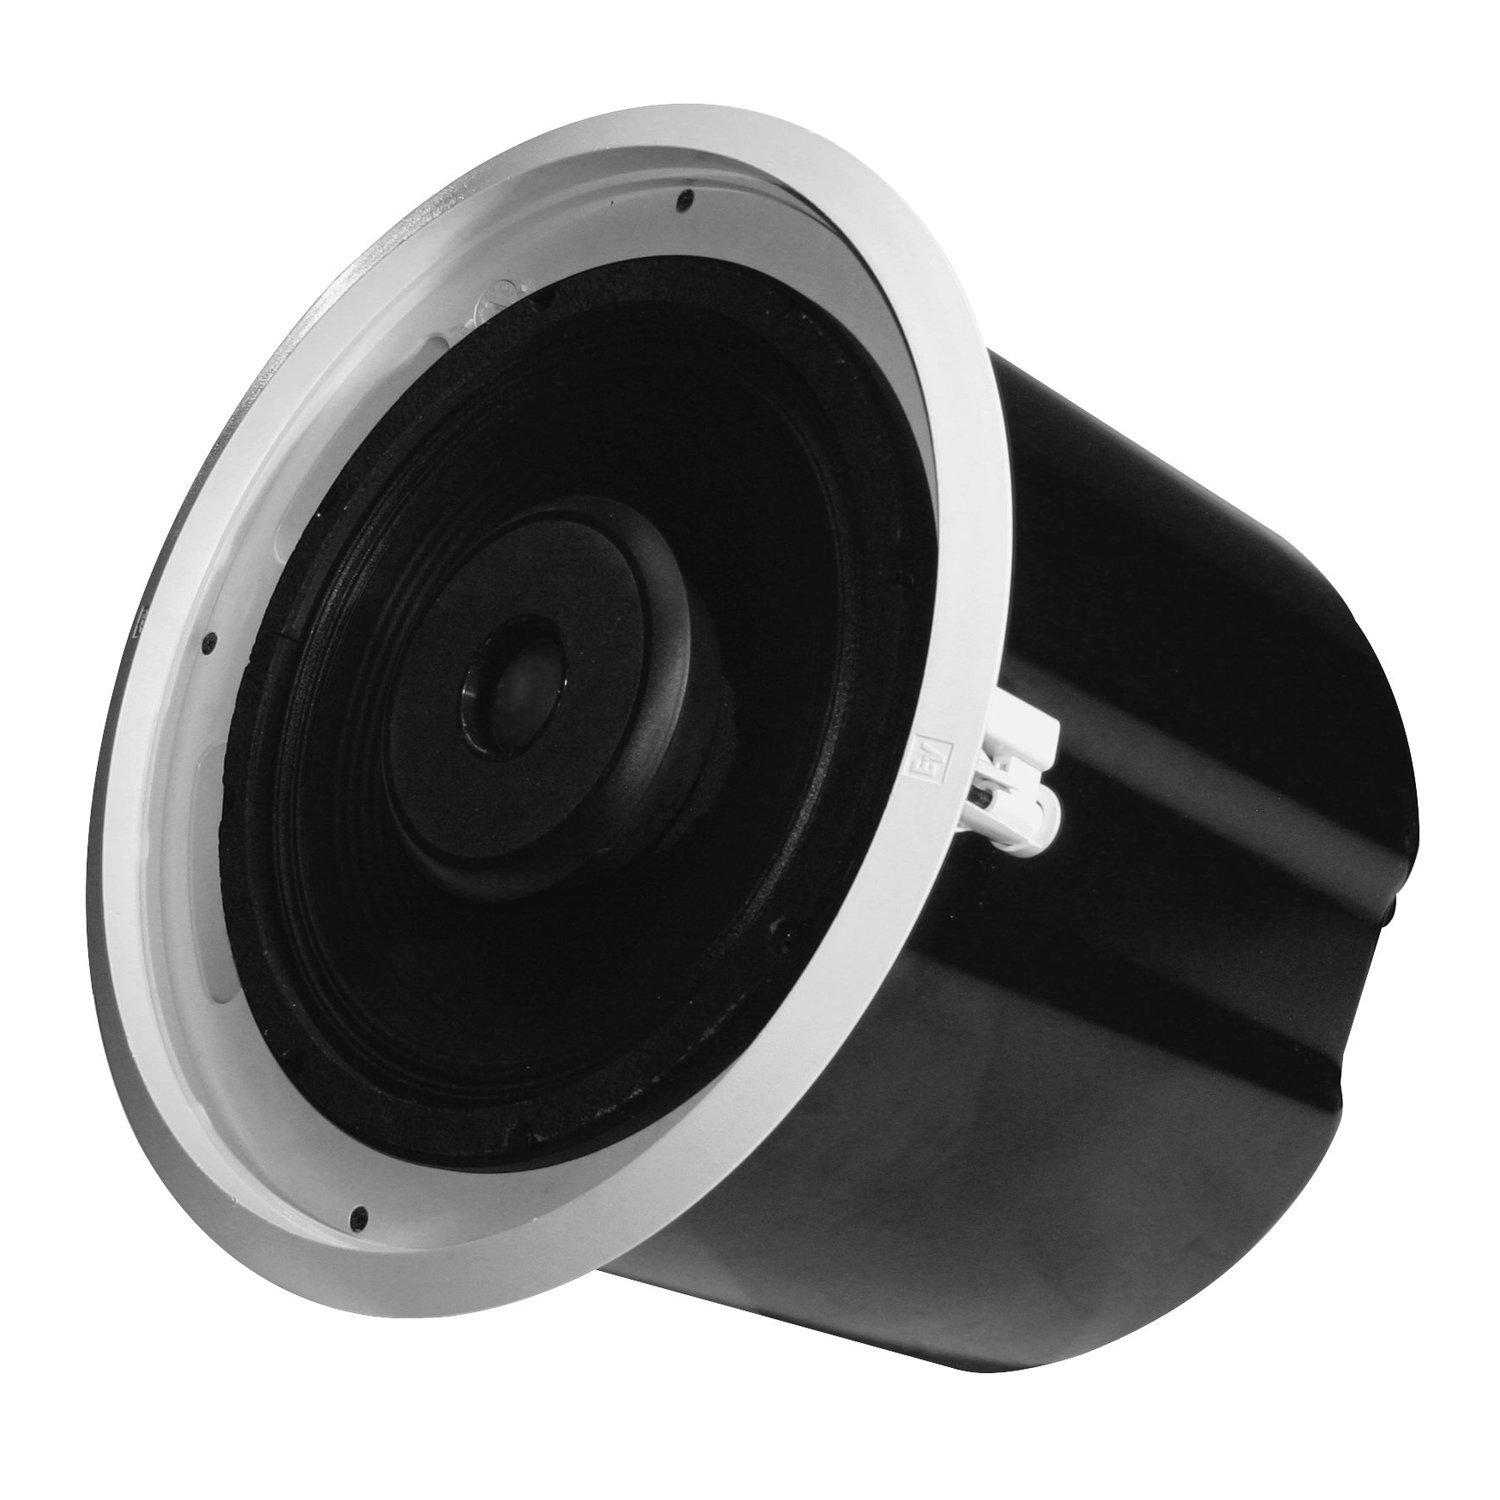 EVID C12.2, INTEGRATED 12IN CEILING MOUNTED SPEAKER SYSTEM - COMPLETE WITH CAN E